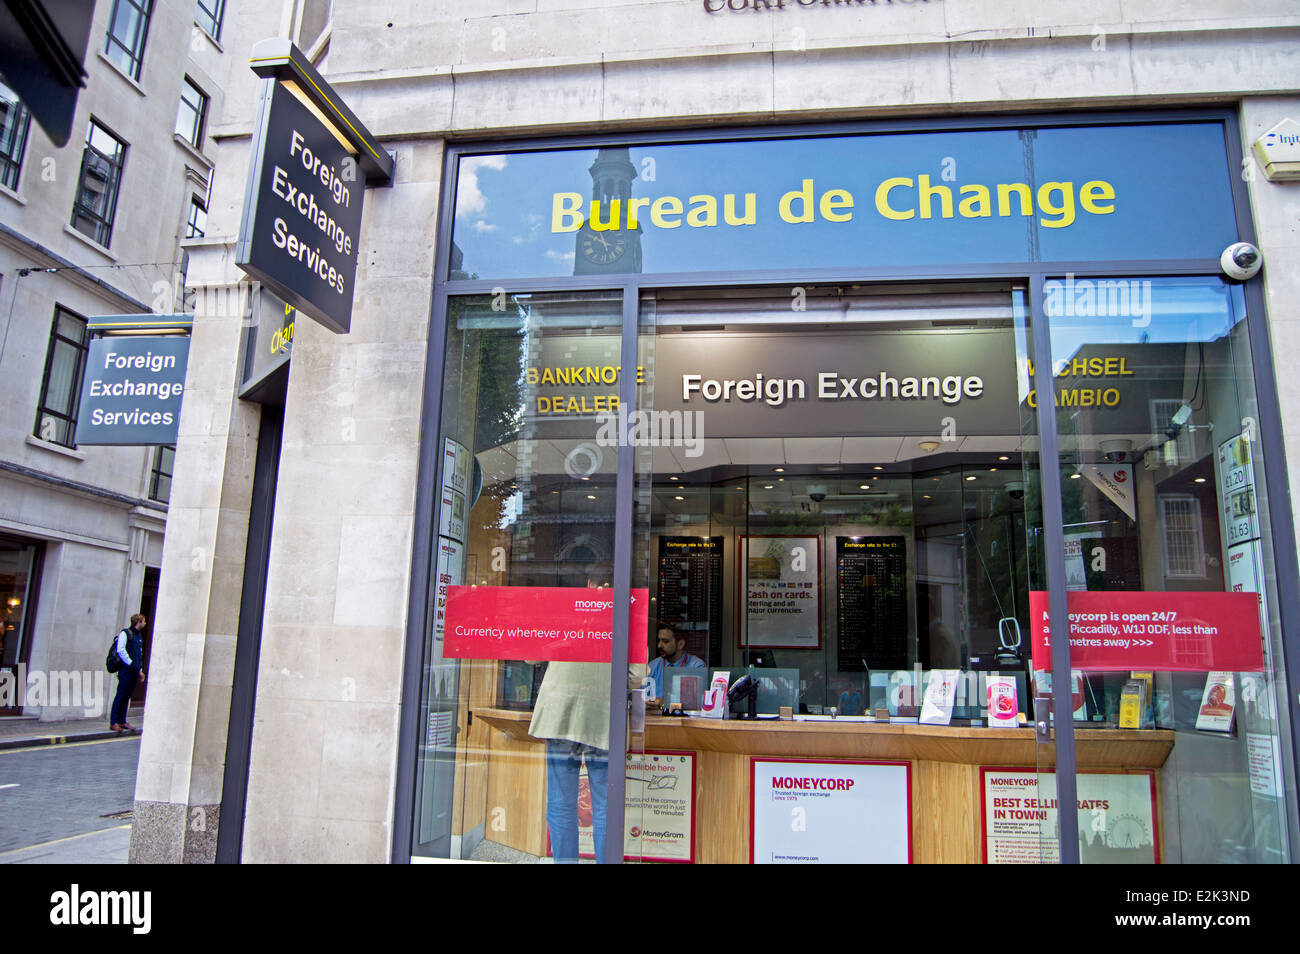 Bureau de change piccadilly city of westminster london for Bureau change